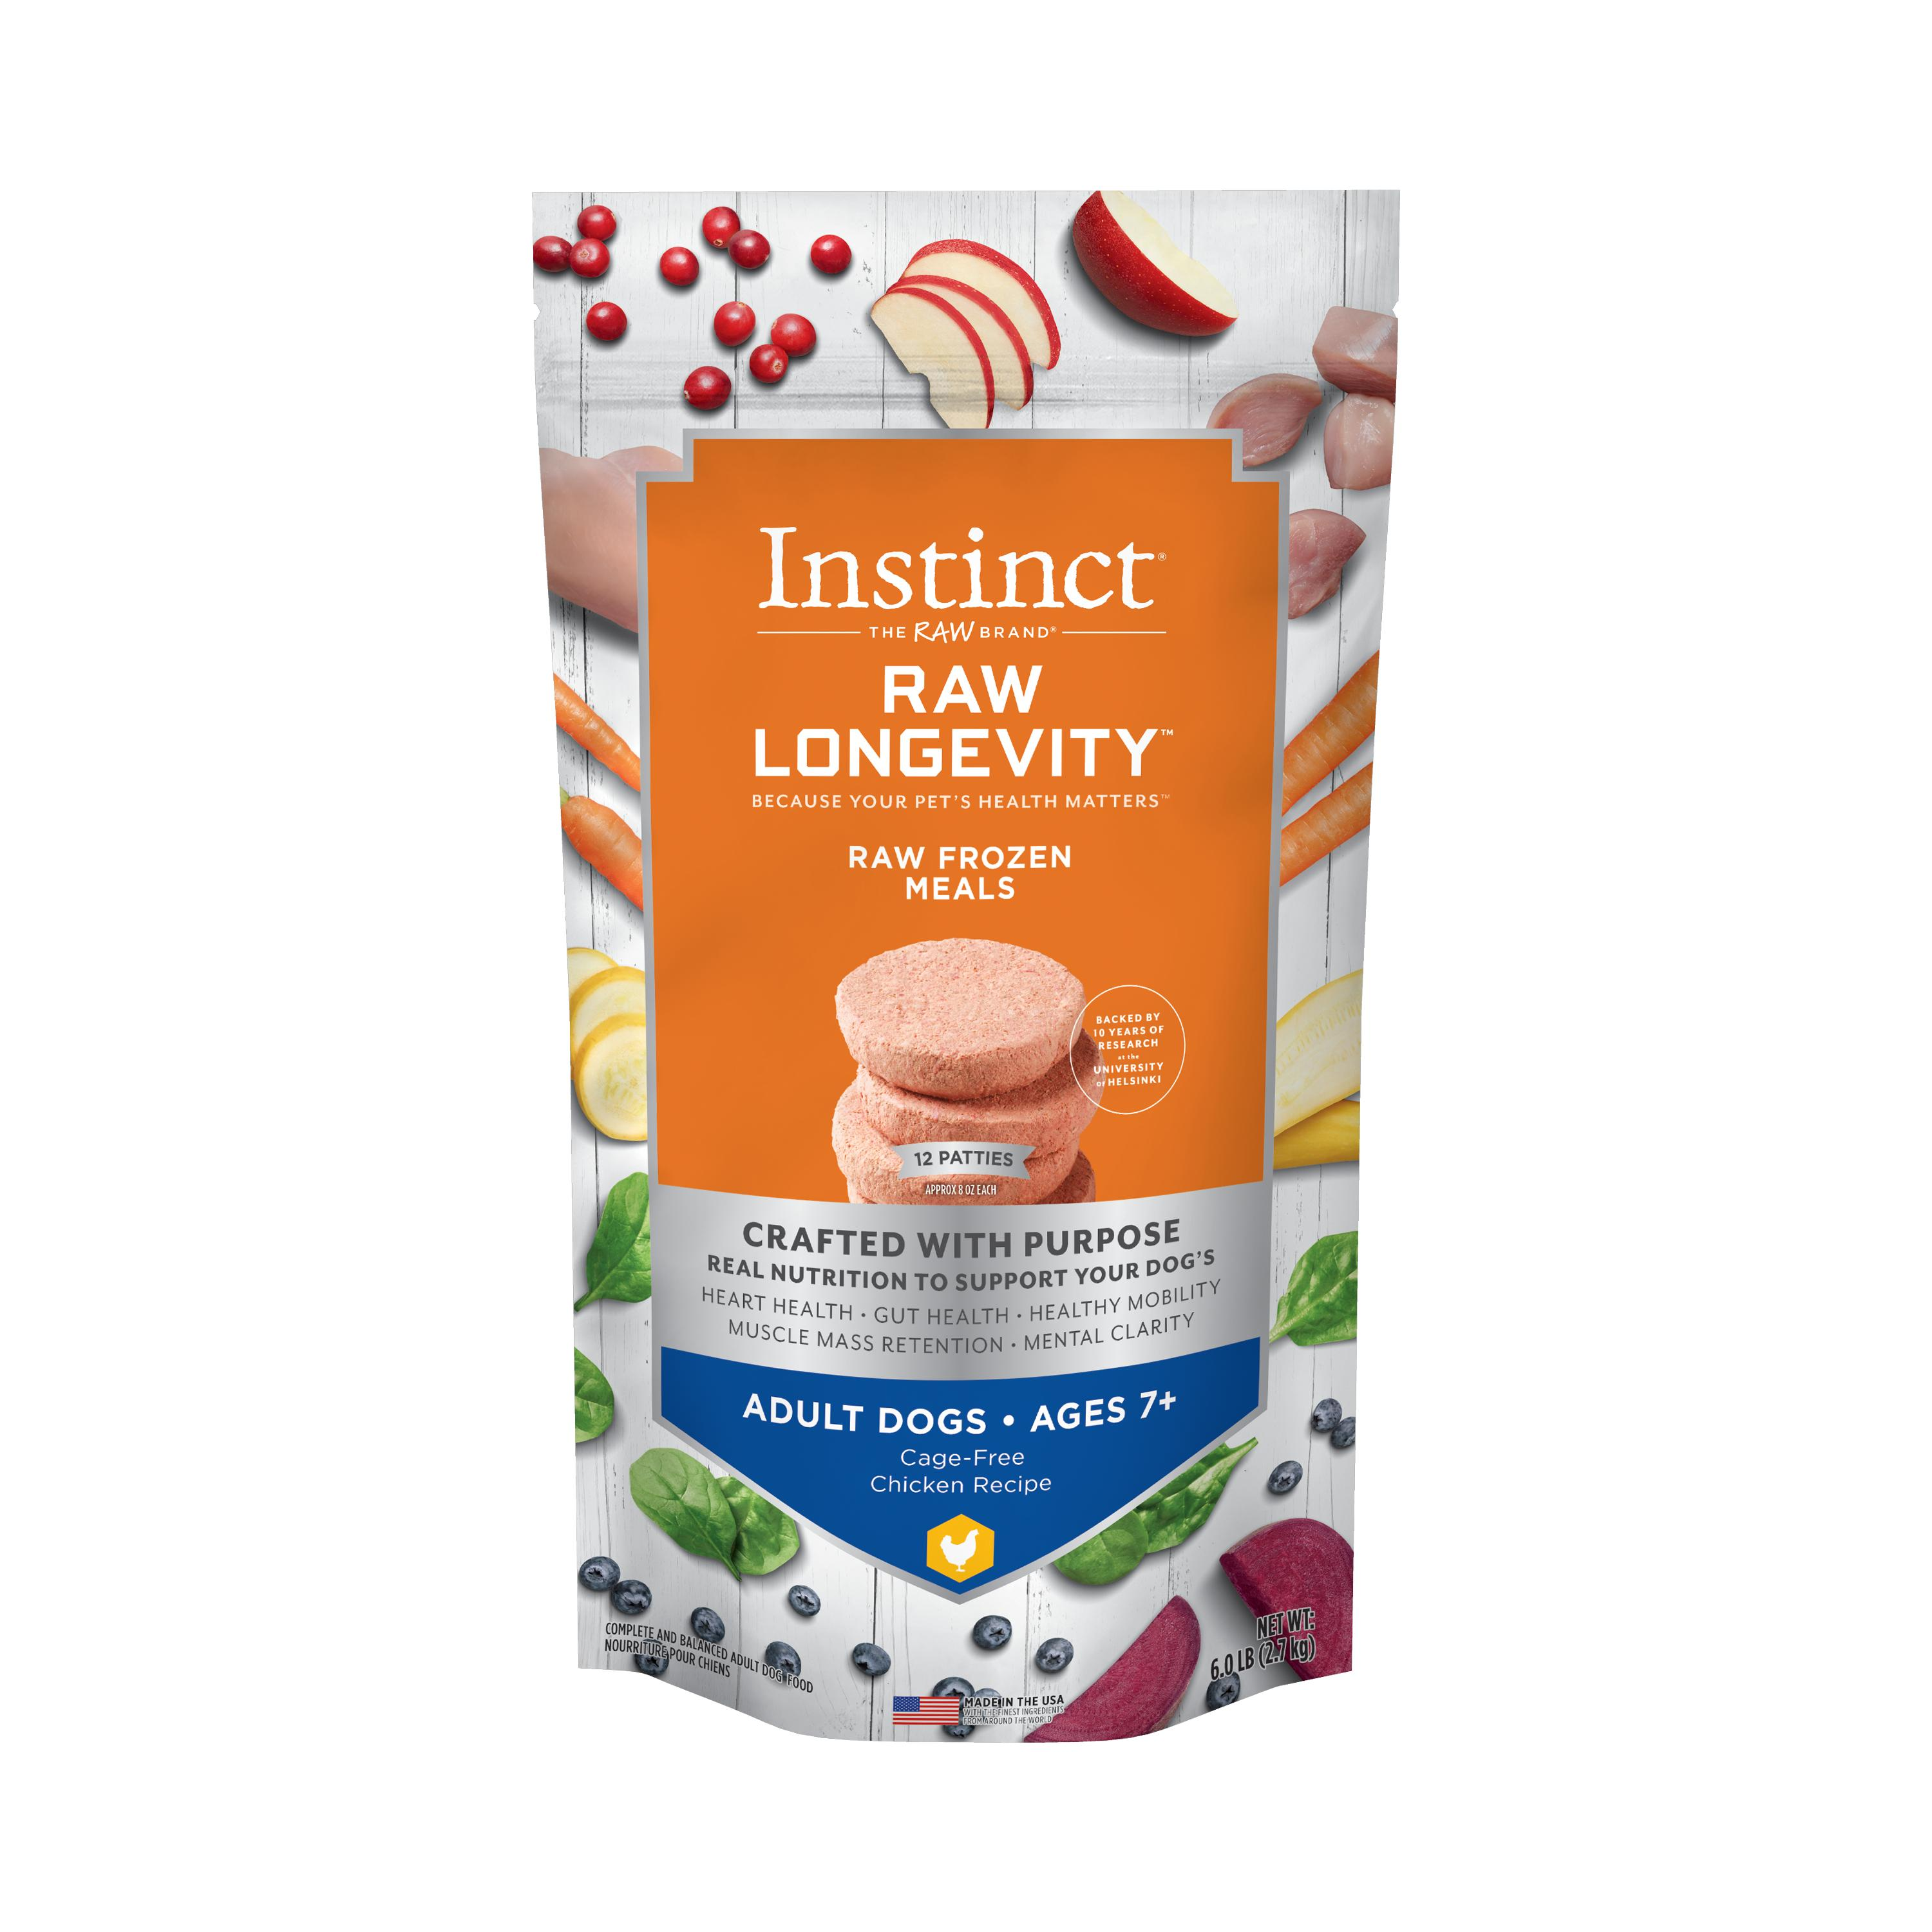 Instinct by Nature's Variety Raw Longevity Patties Cage-Free Chicken Age 7+ Frozen Dog Food, 6-lb